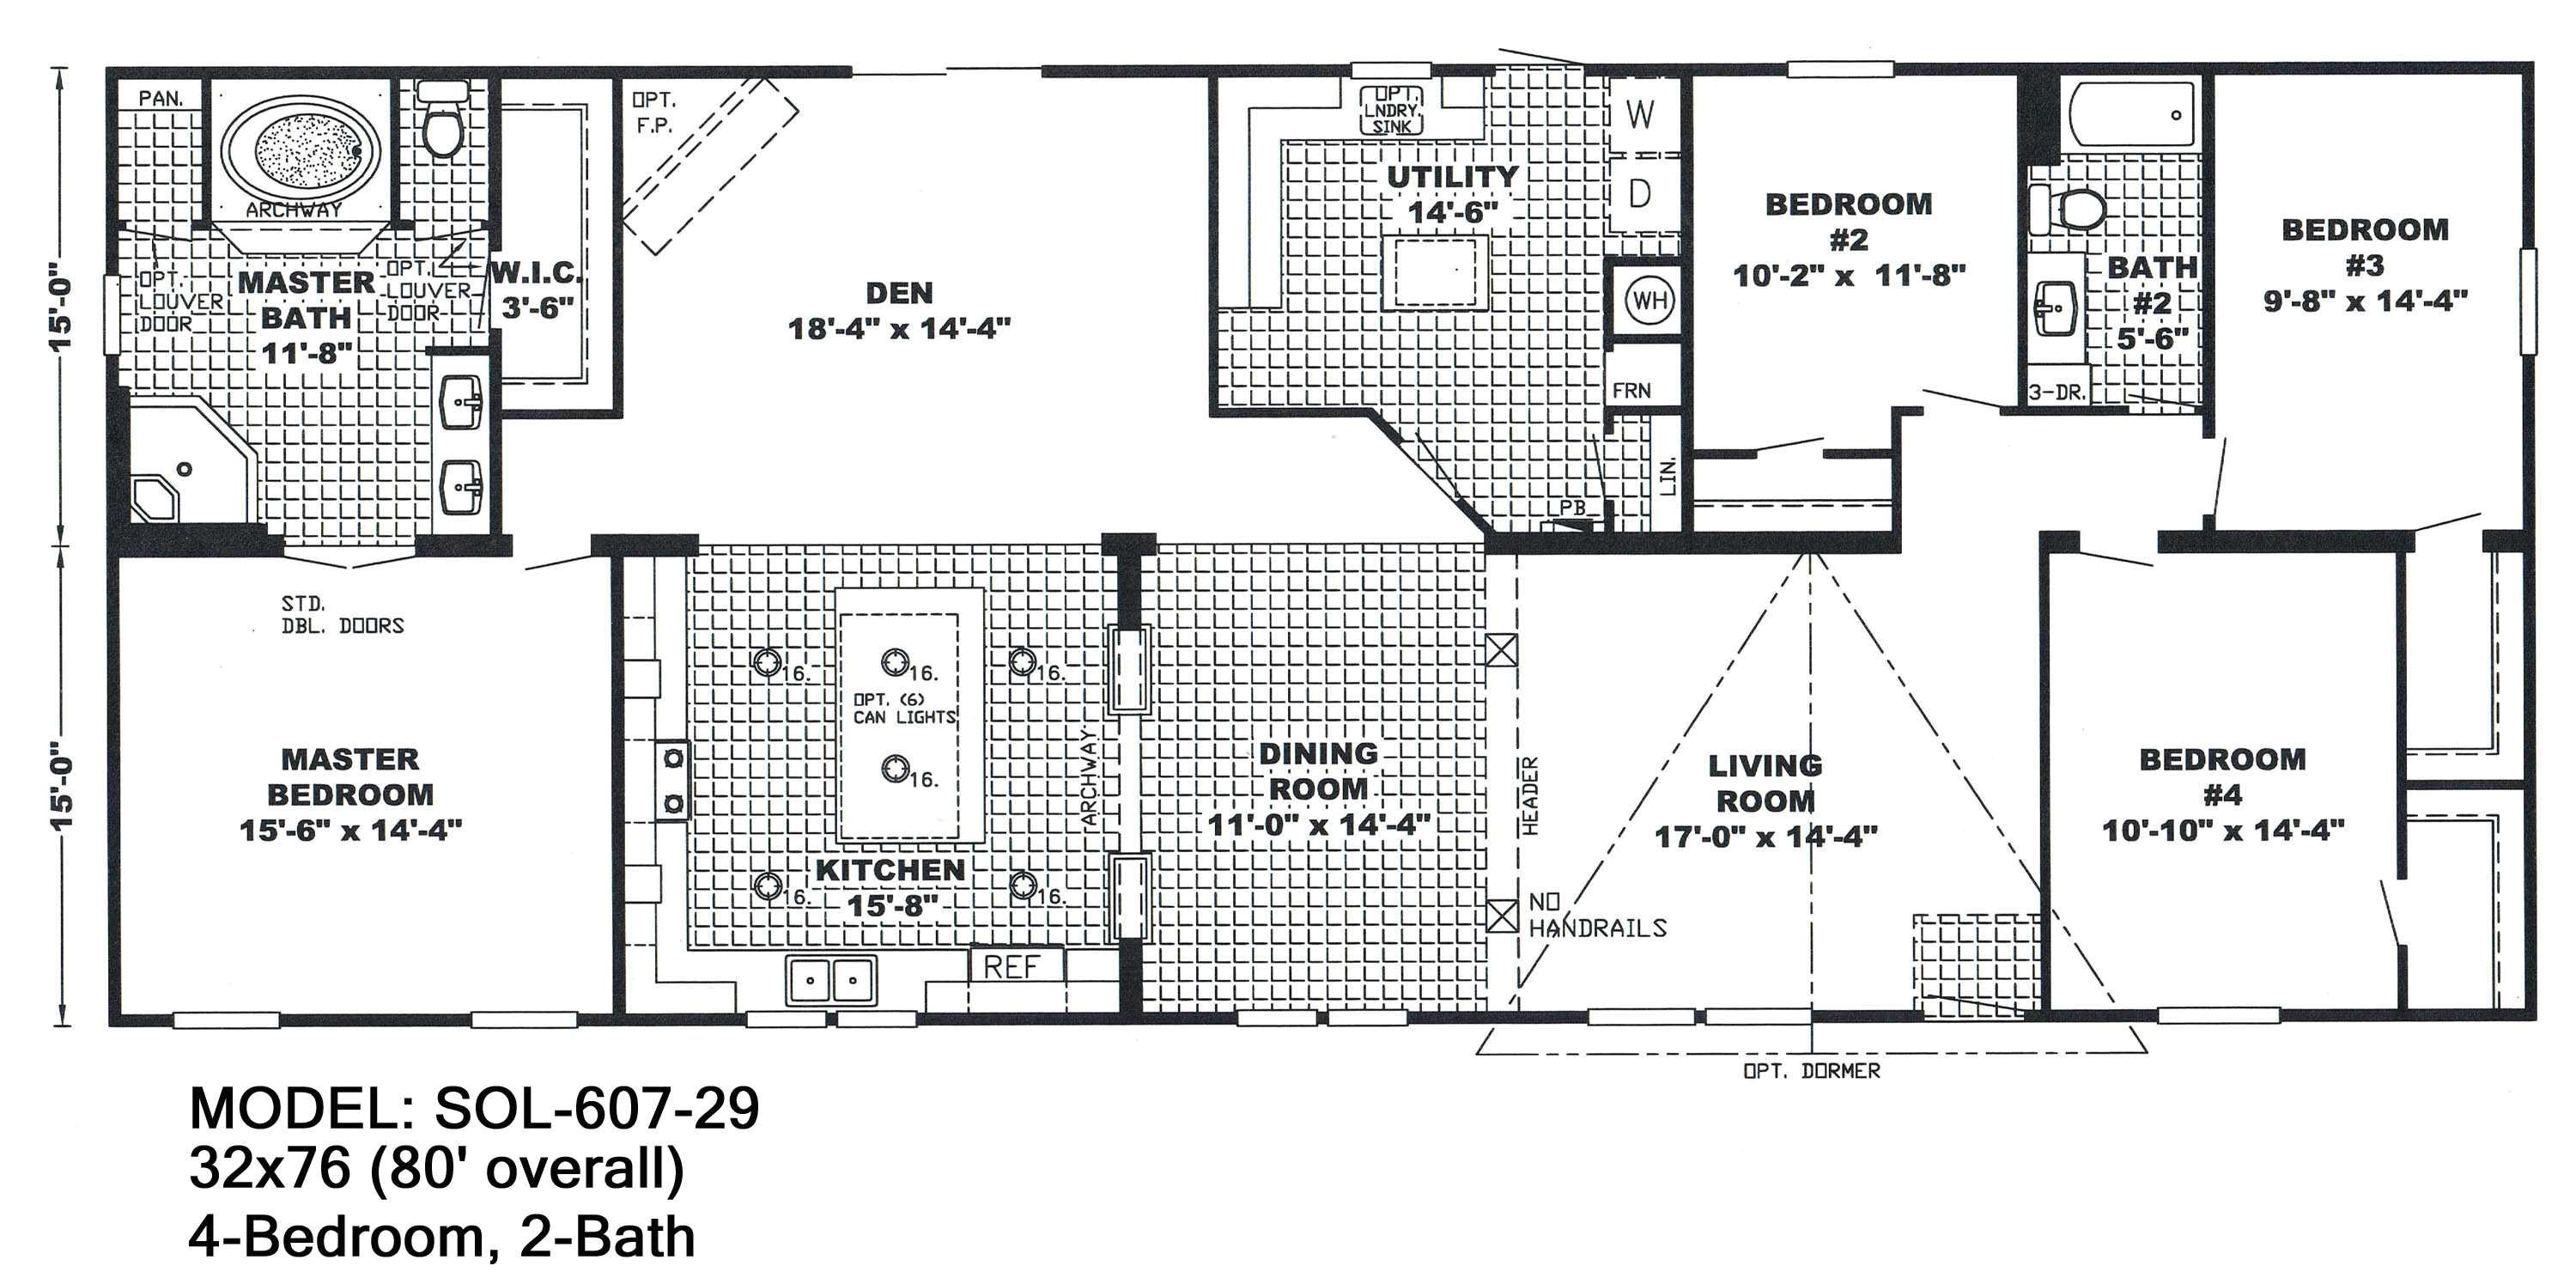 6 bedroom mobile homes floor plans